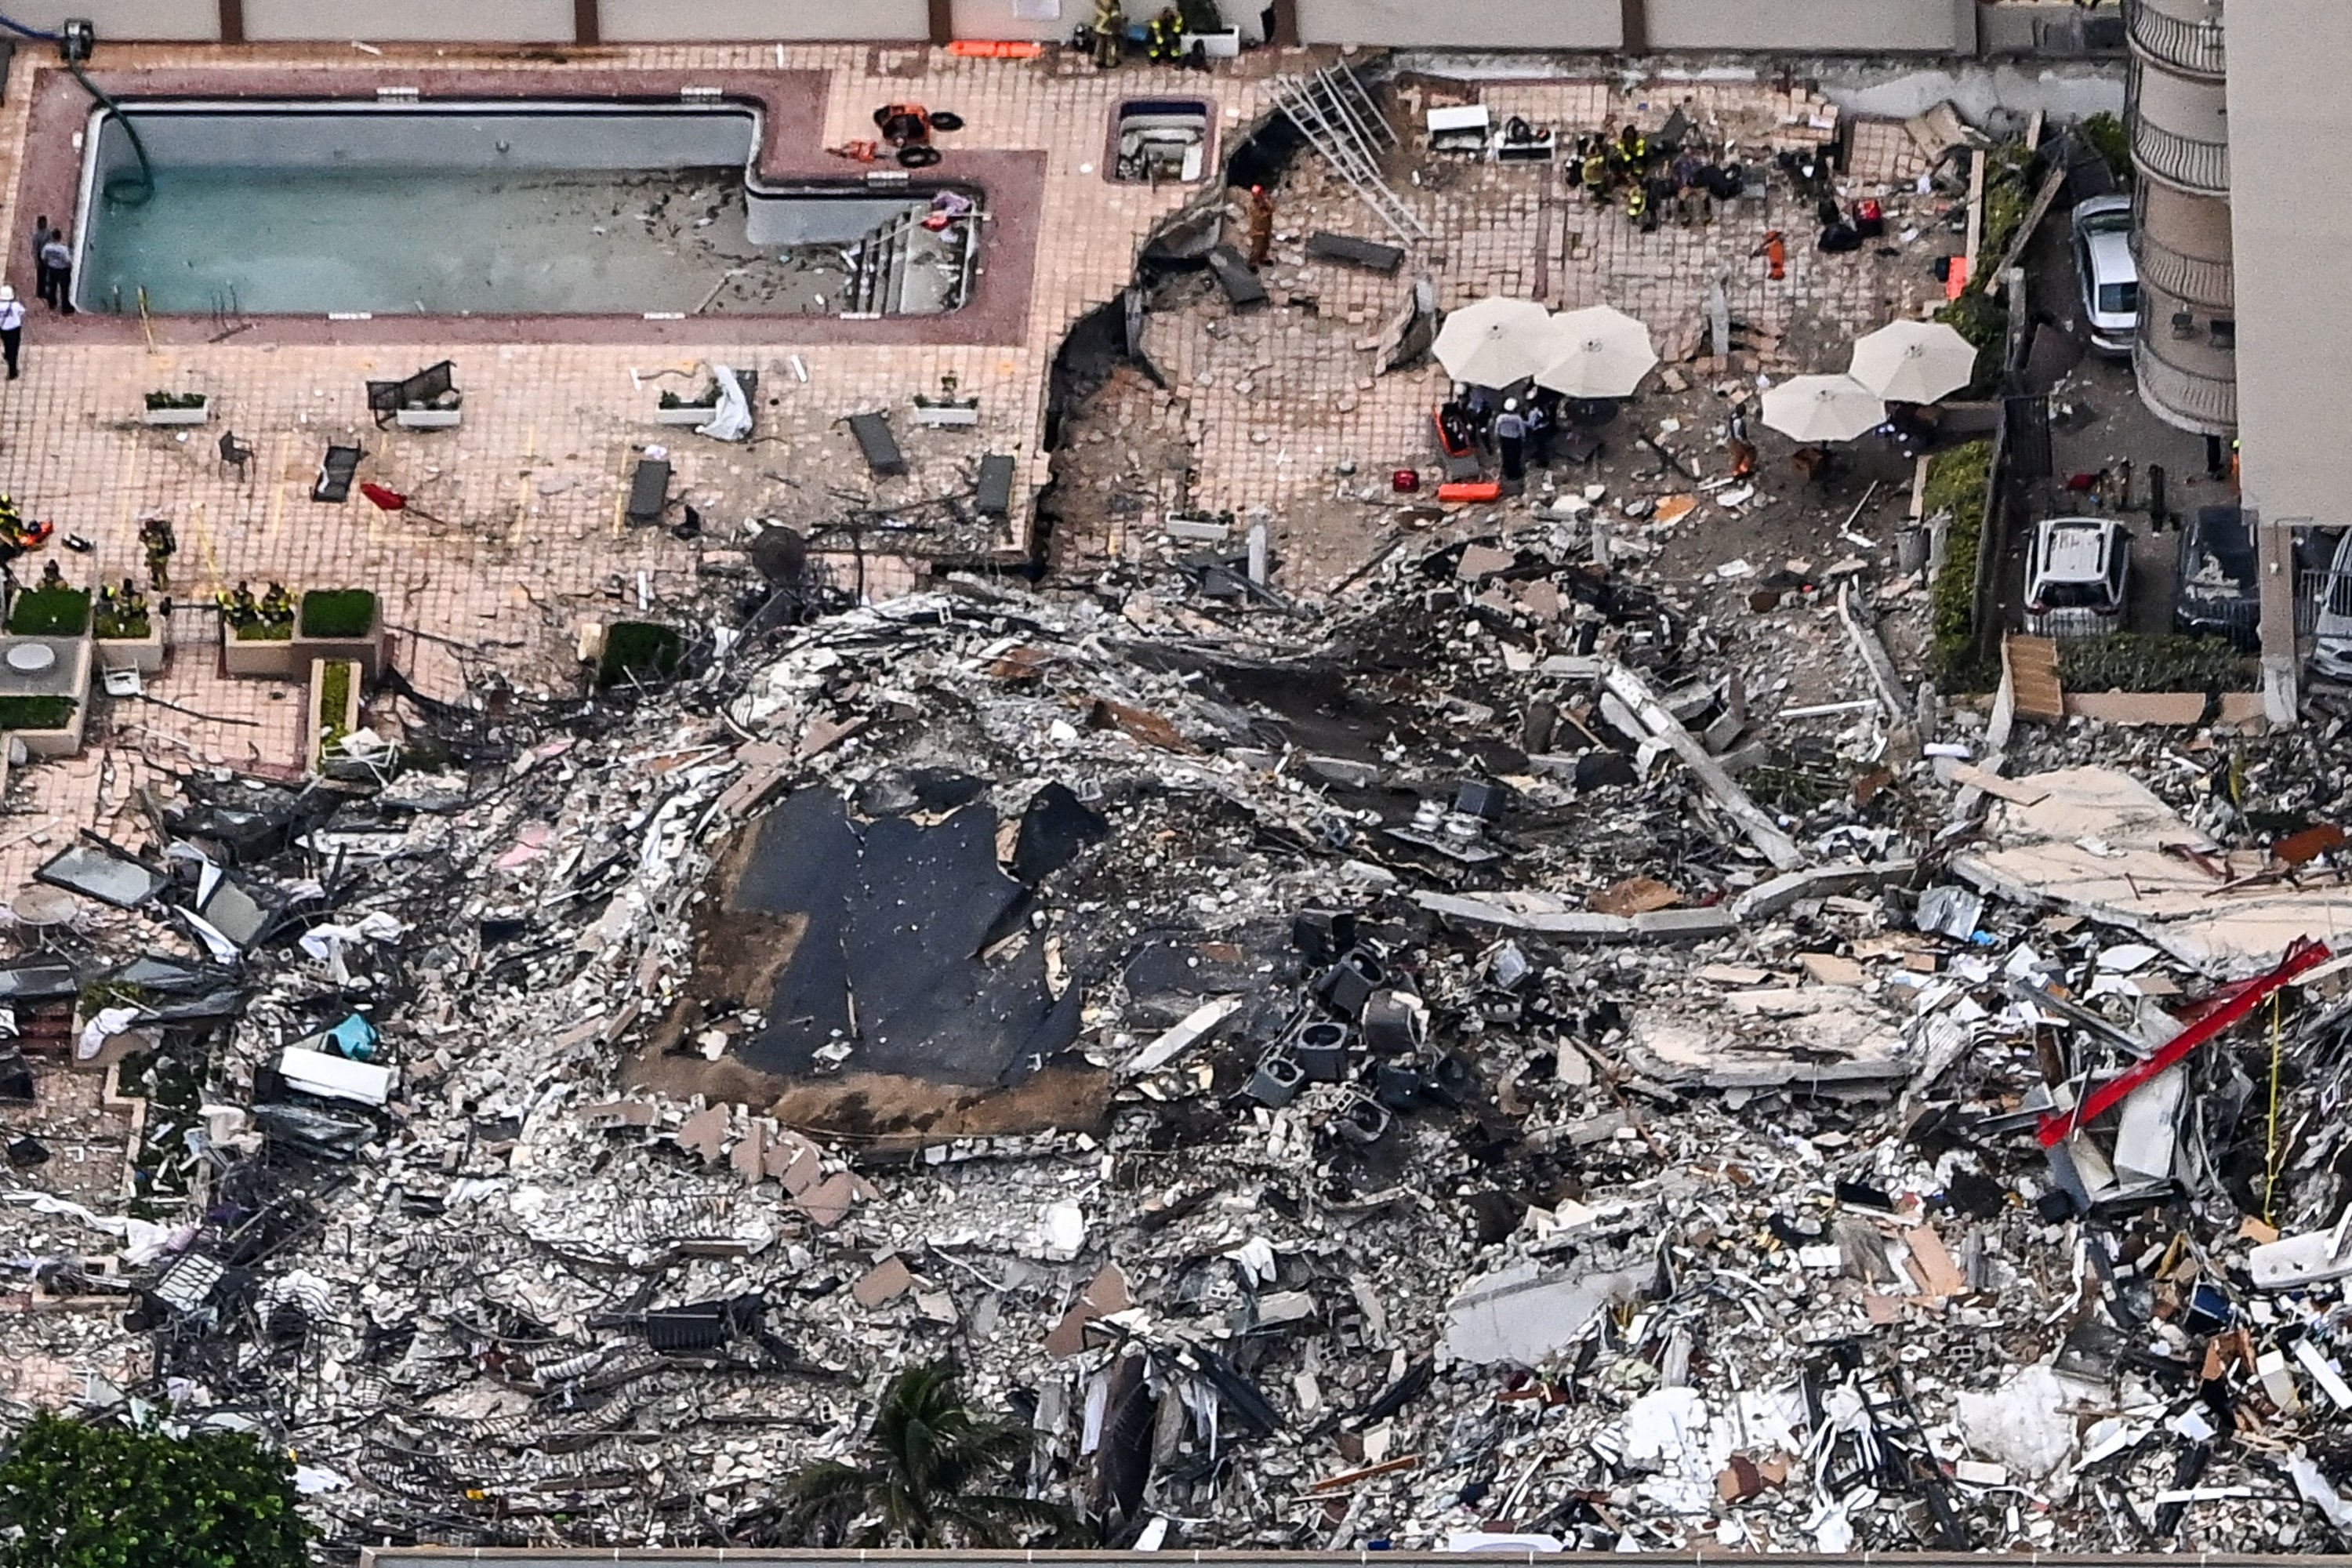 An overhead view of rubble from the partially collapsed building, an emptied pool, and umbrellas